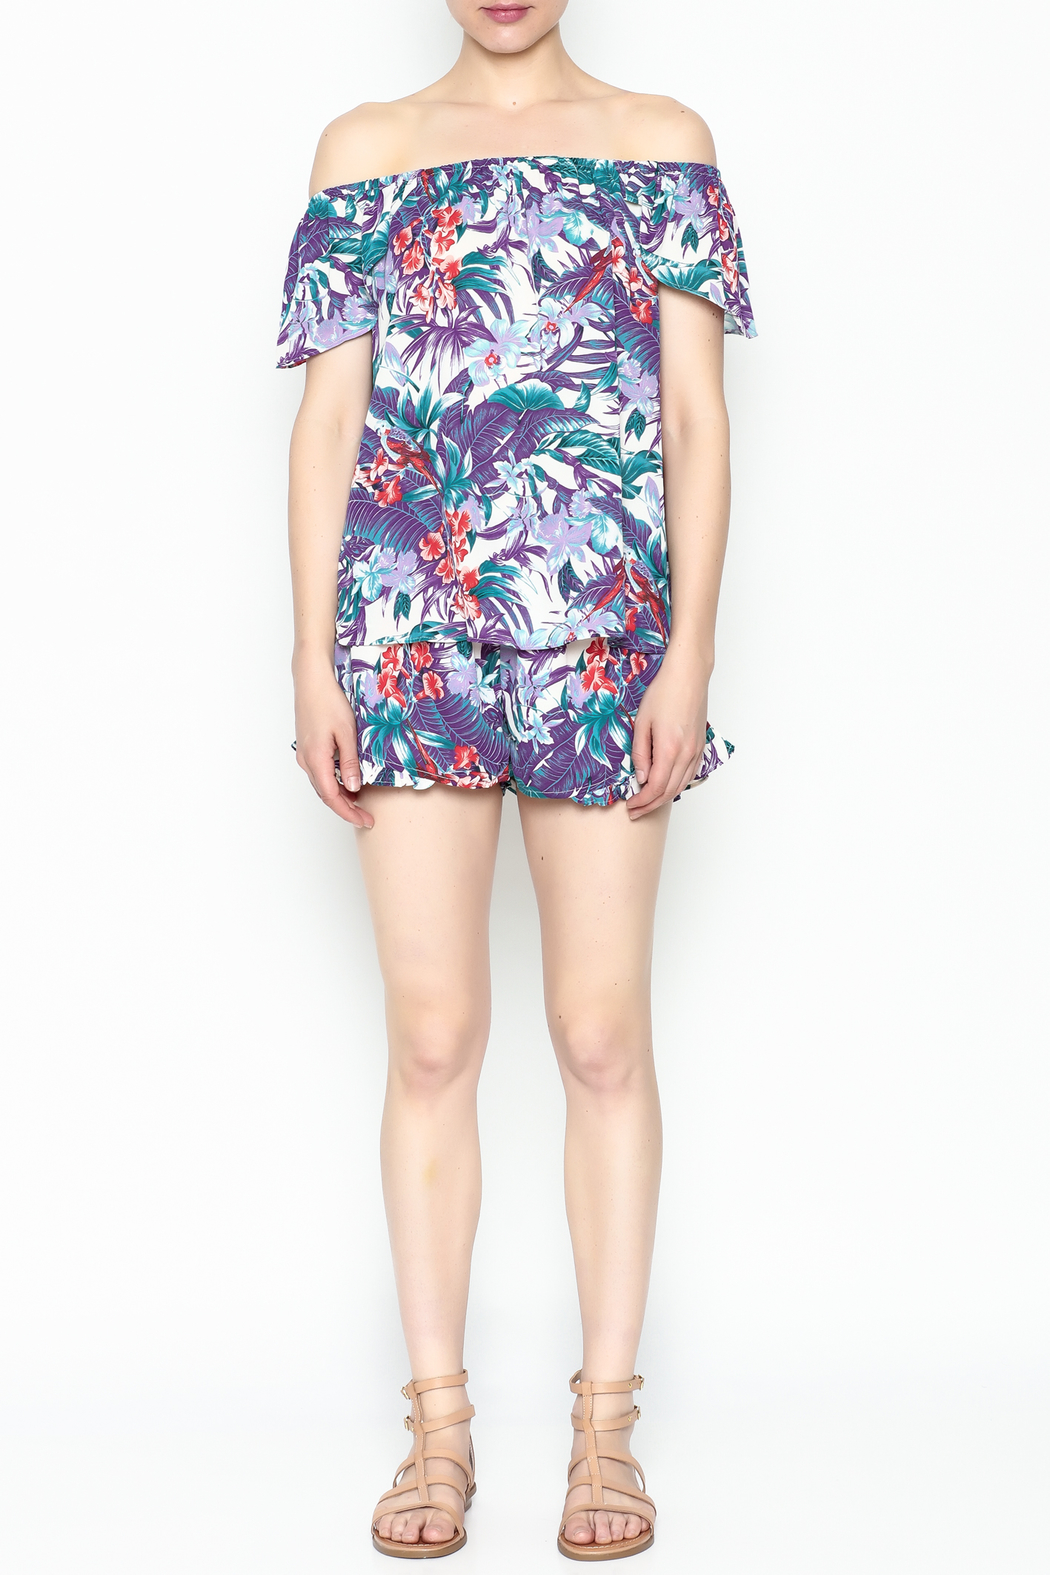 Izzy & Lola Tropical Long Beach Top - Front Full Image